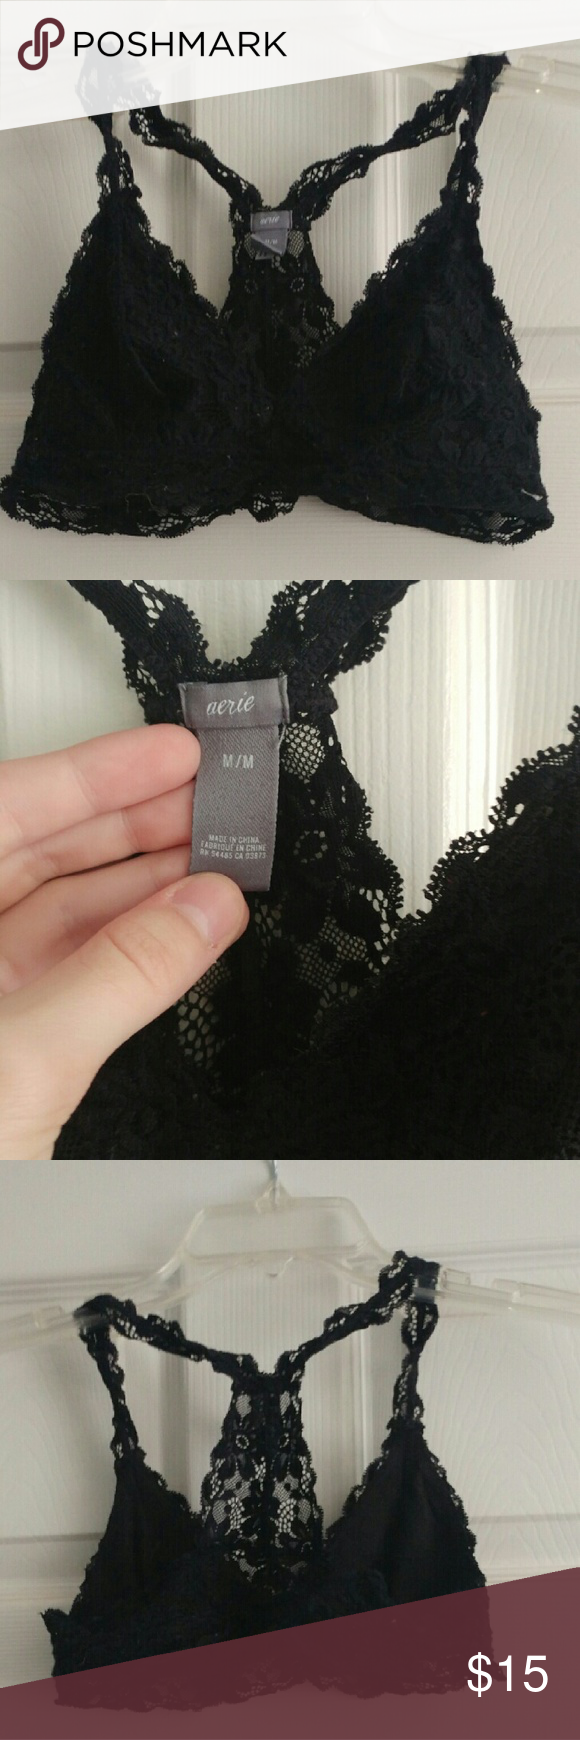 Aerie Lace Bralette This bralette is super comfy!  This is a reposh because I don't like the fit of this.  Make an offer?? aerie Intimates & Sleepwear Bras